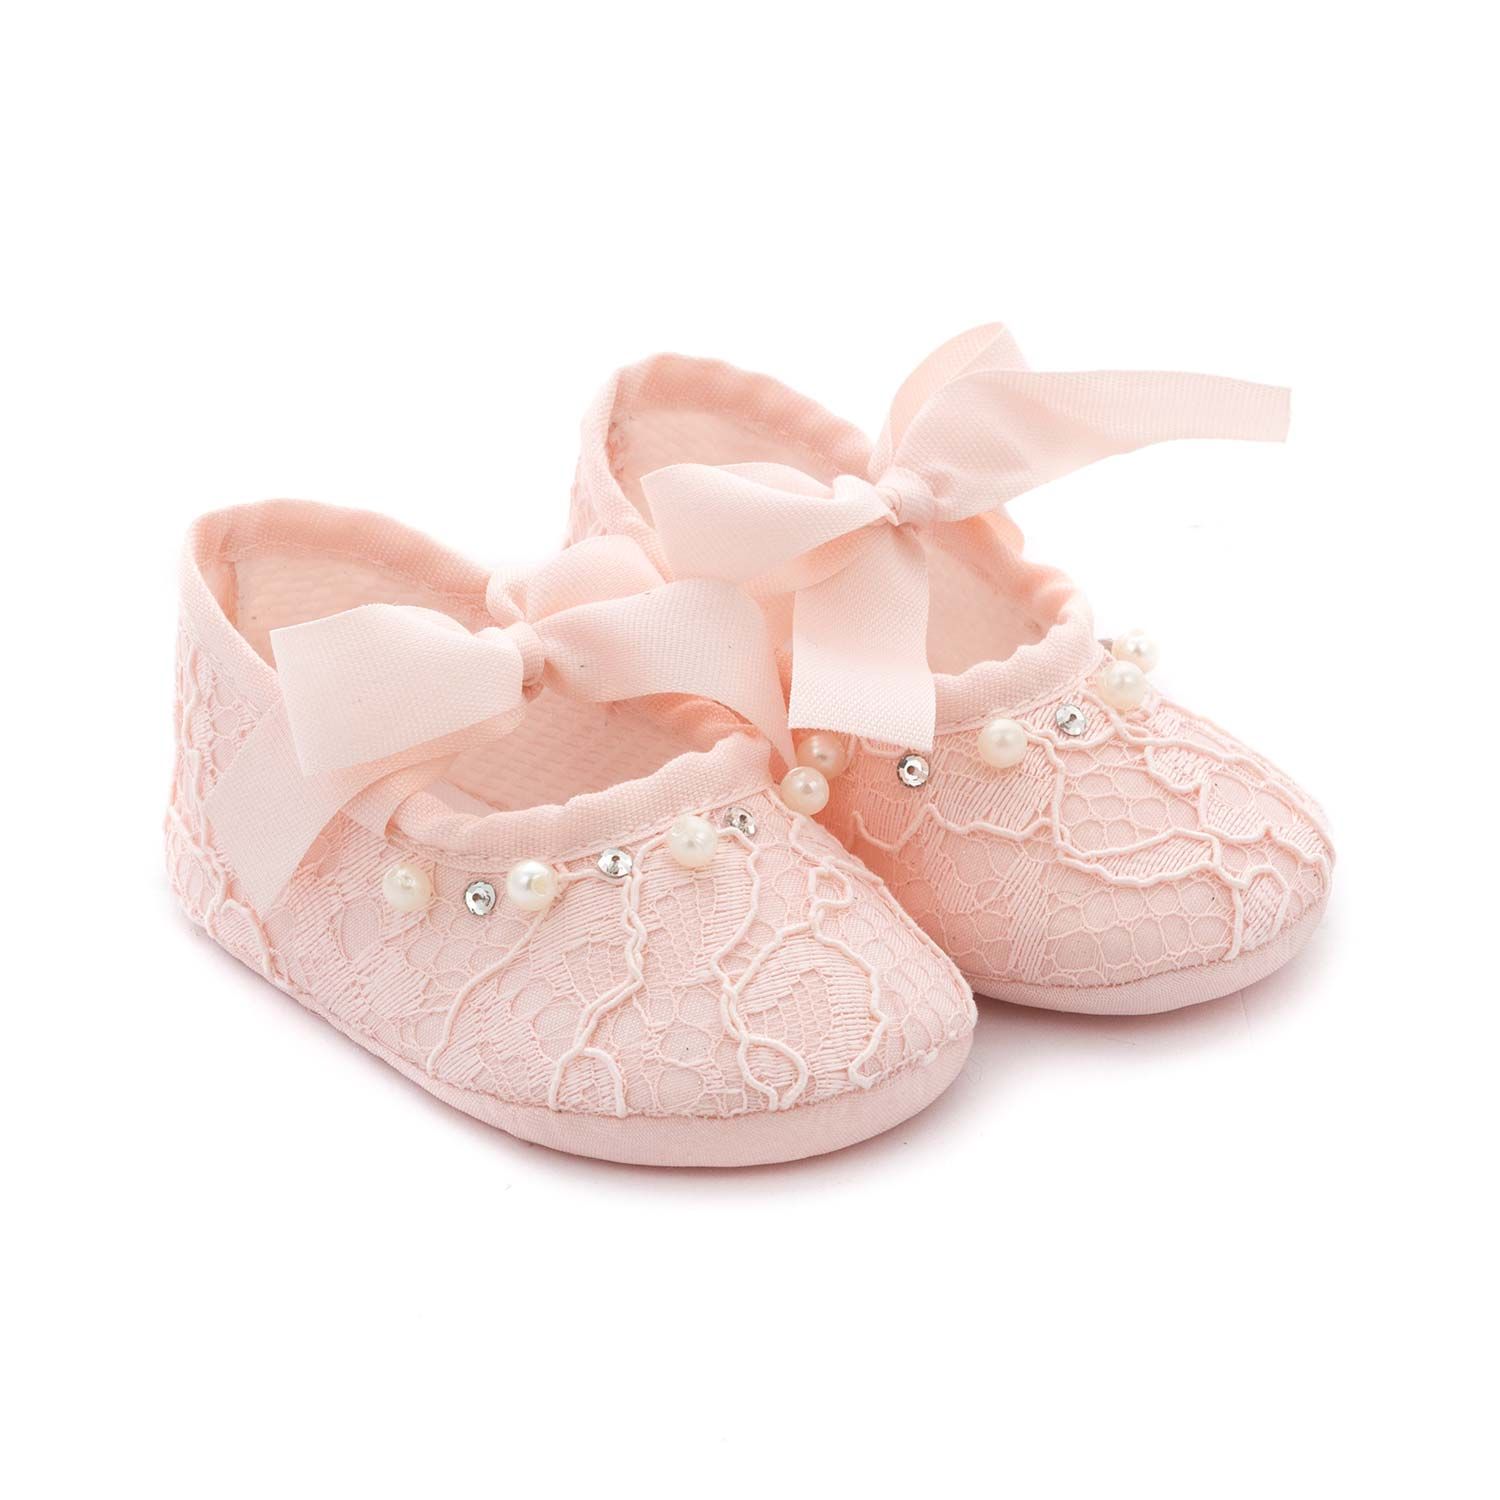 outlet store great look crazy price Pink Ballerina Shoes For Baby Girl